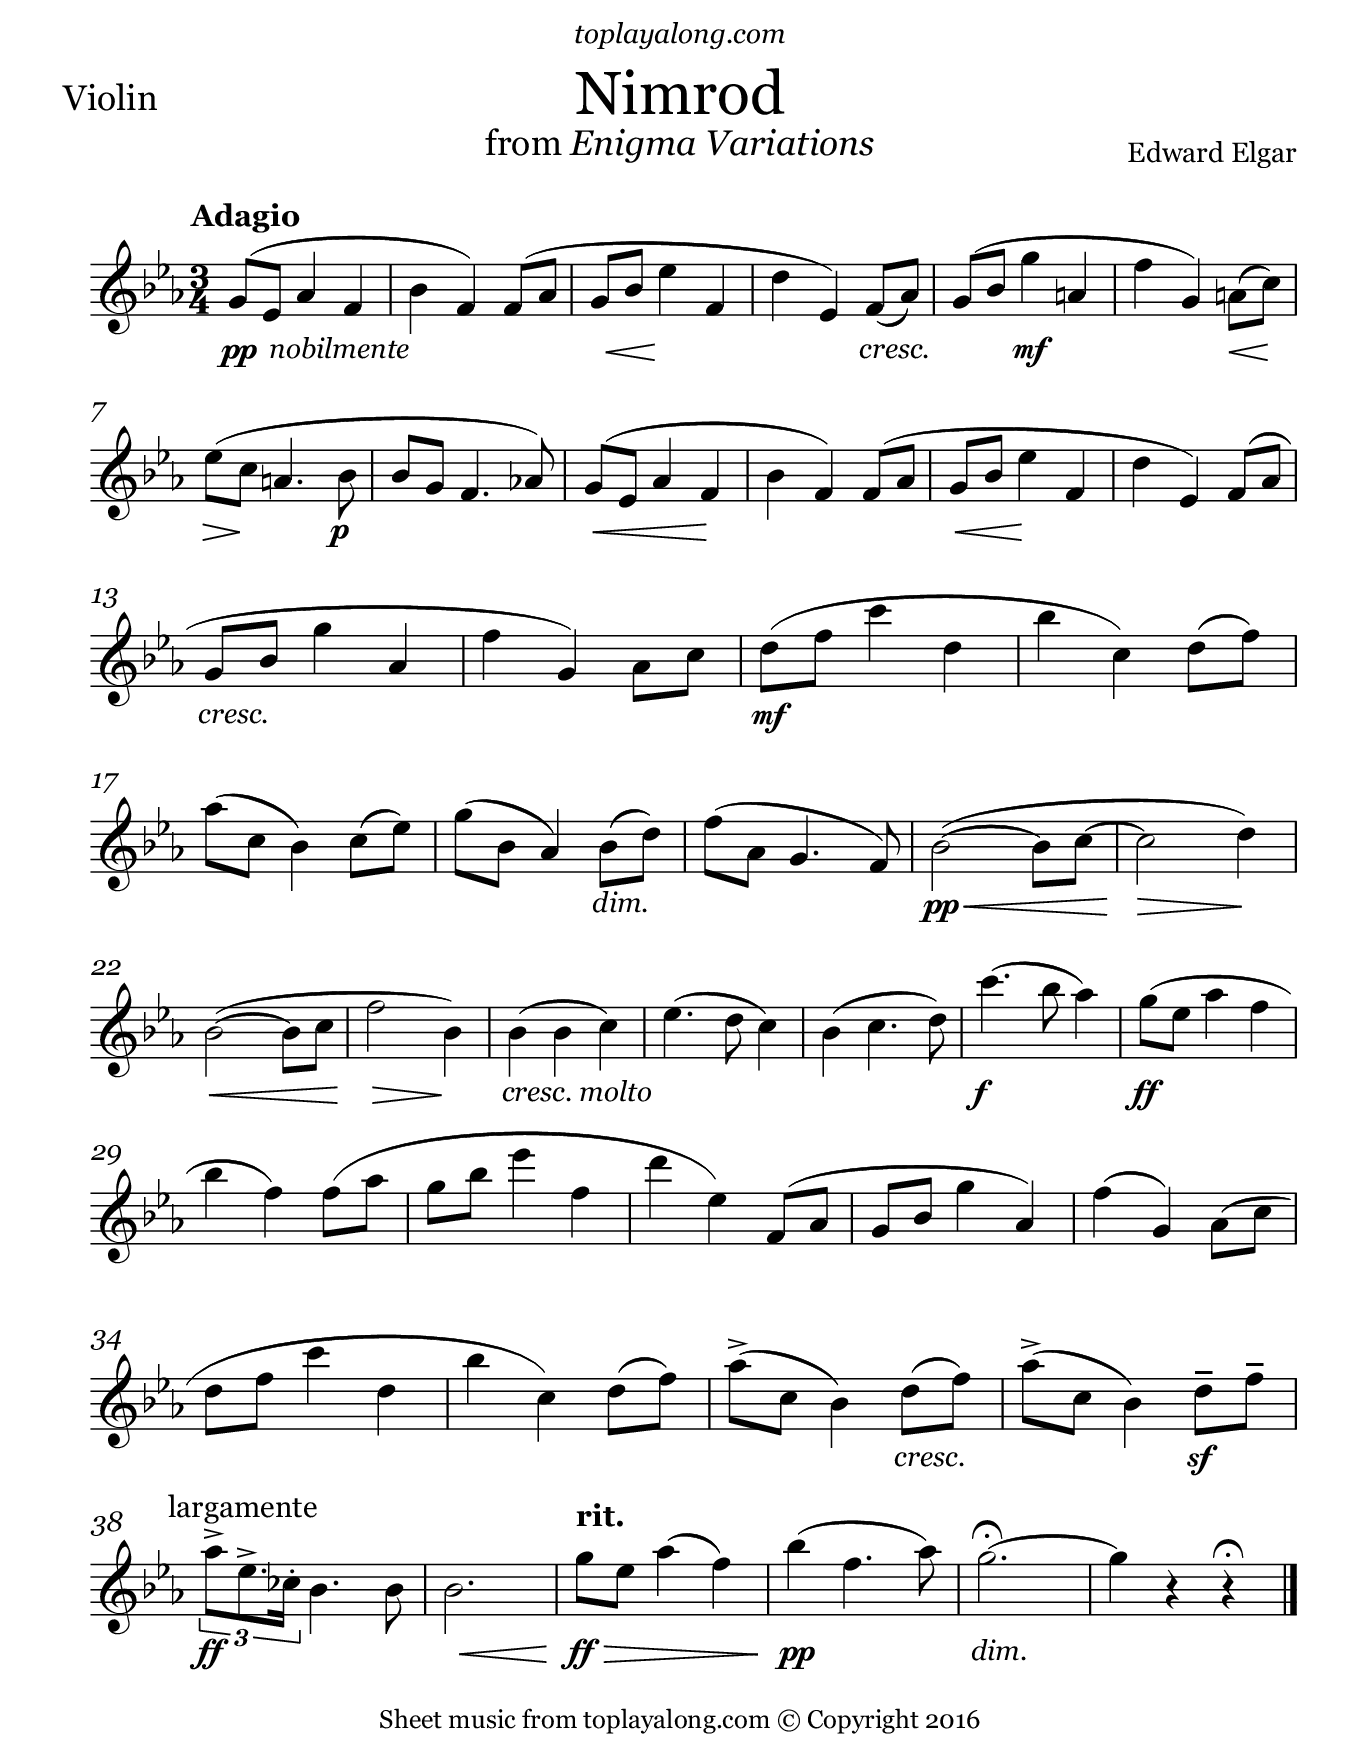 Nimrod from Enigma Variations by Elgar. Sheet music for Violin, page 1.